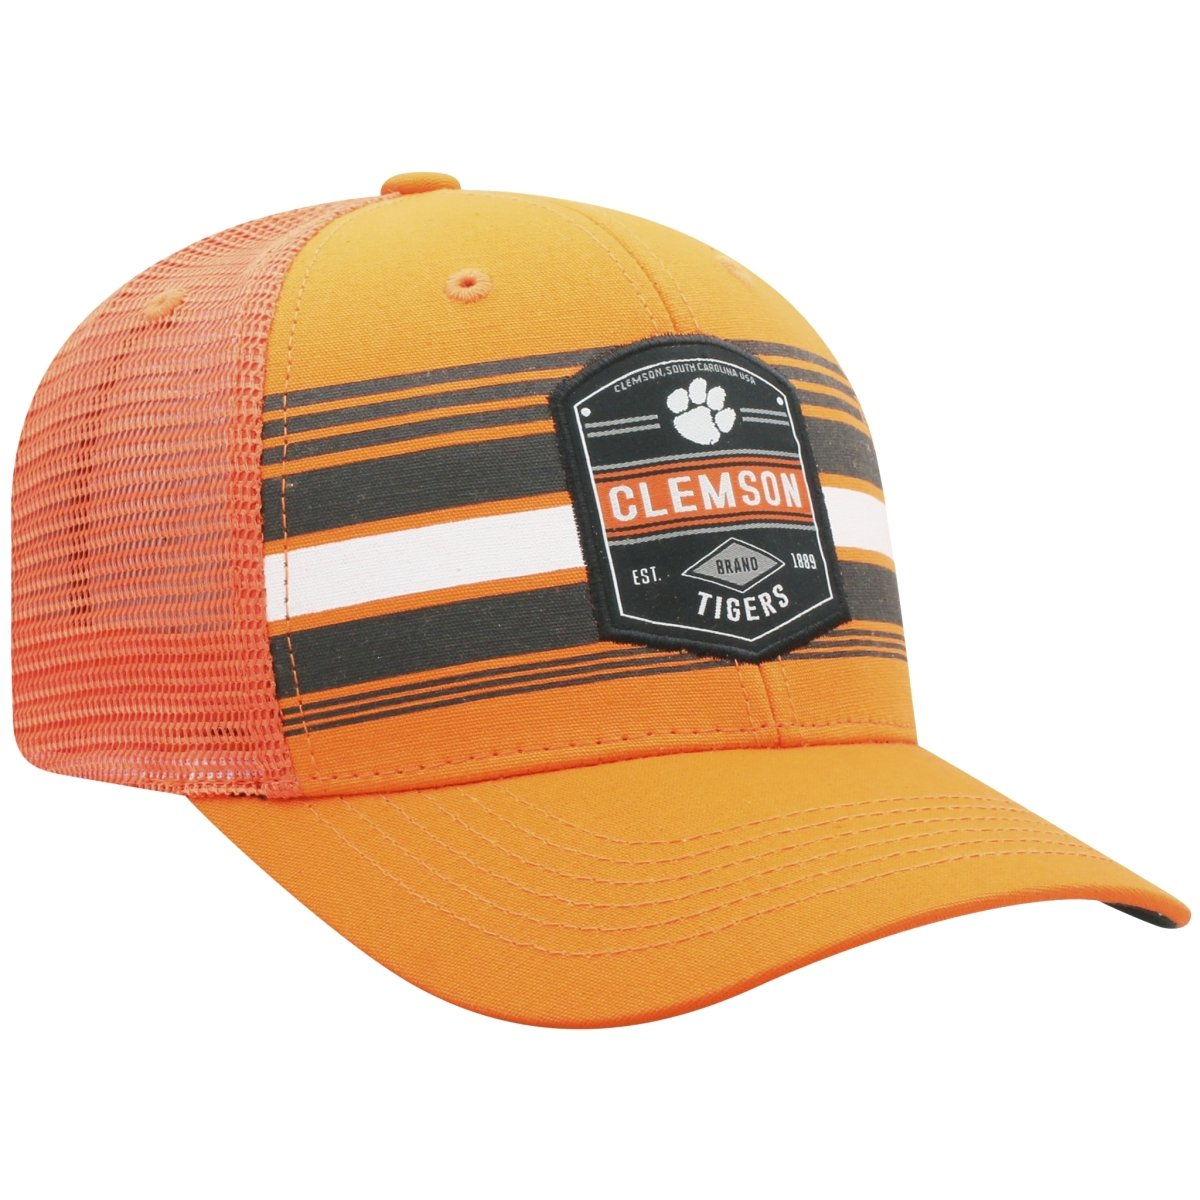 Clemson Tigers Top of the World Branded Trucker Adjustable Snapback Hat - Orange - Mr. Knickerbocker